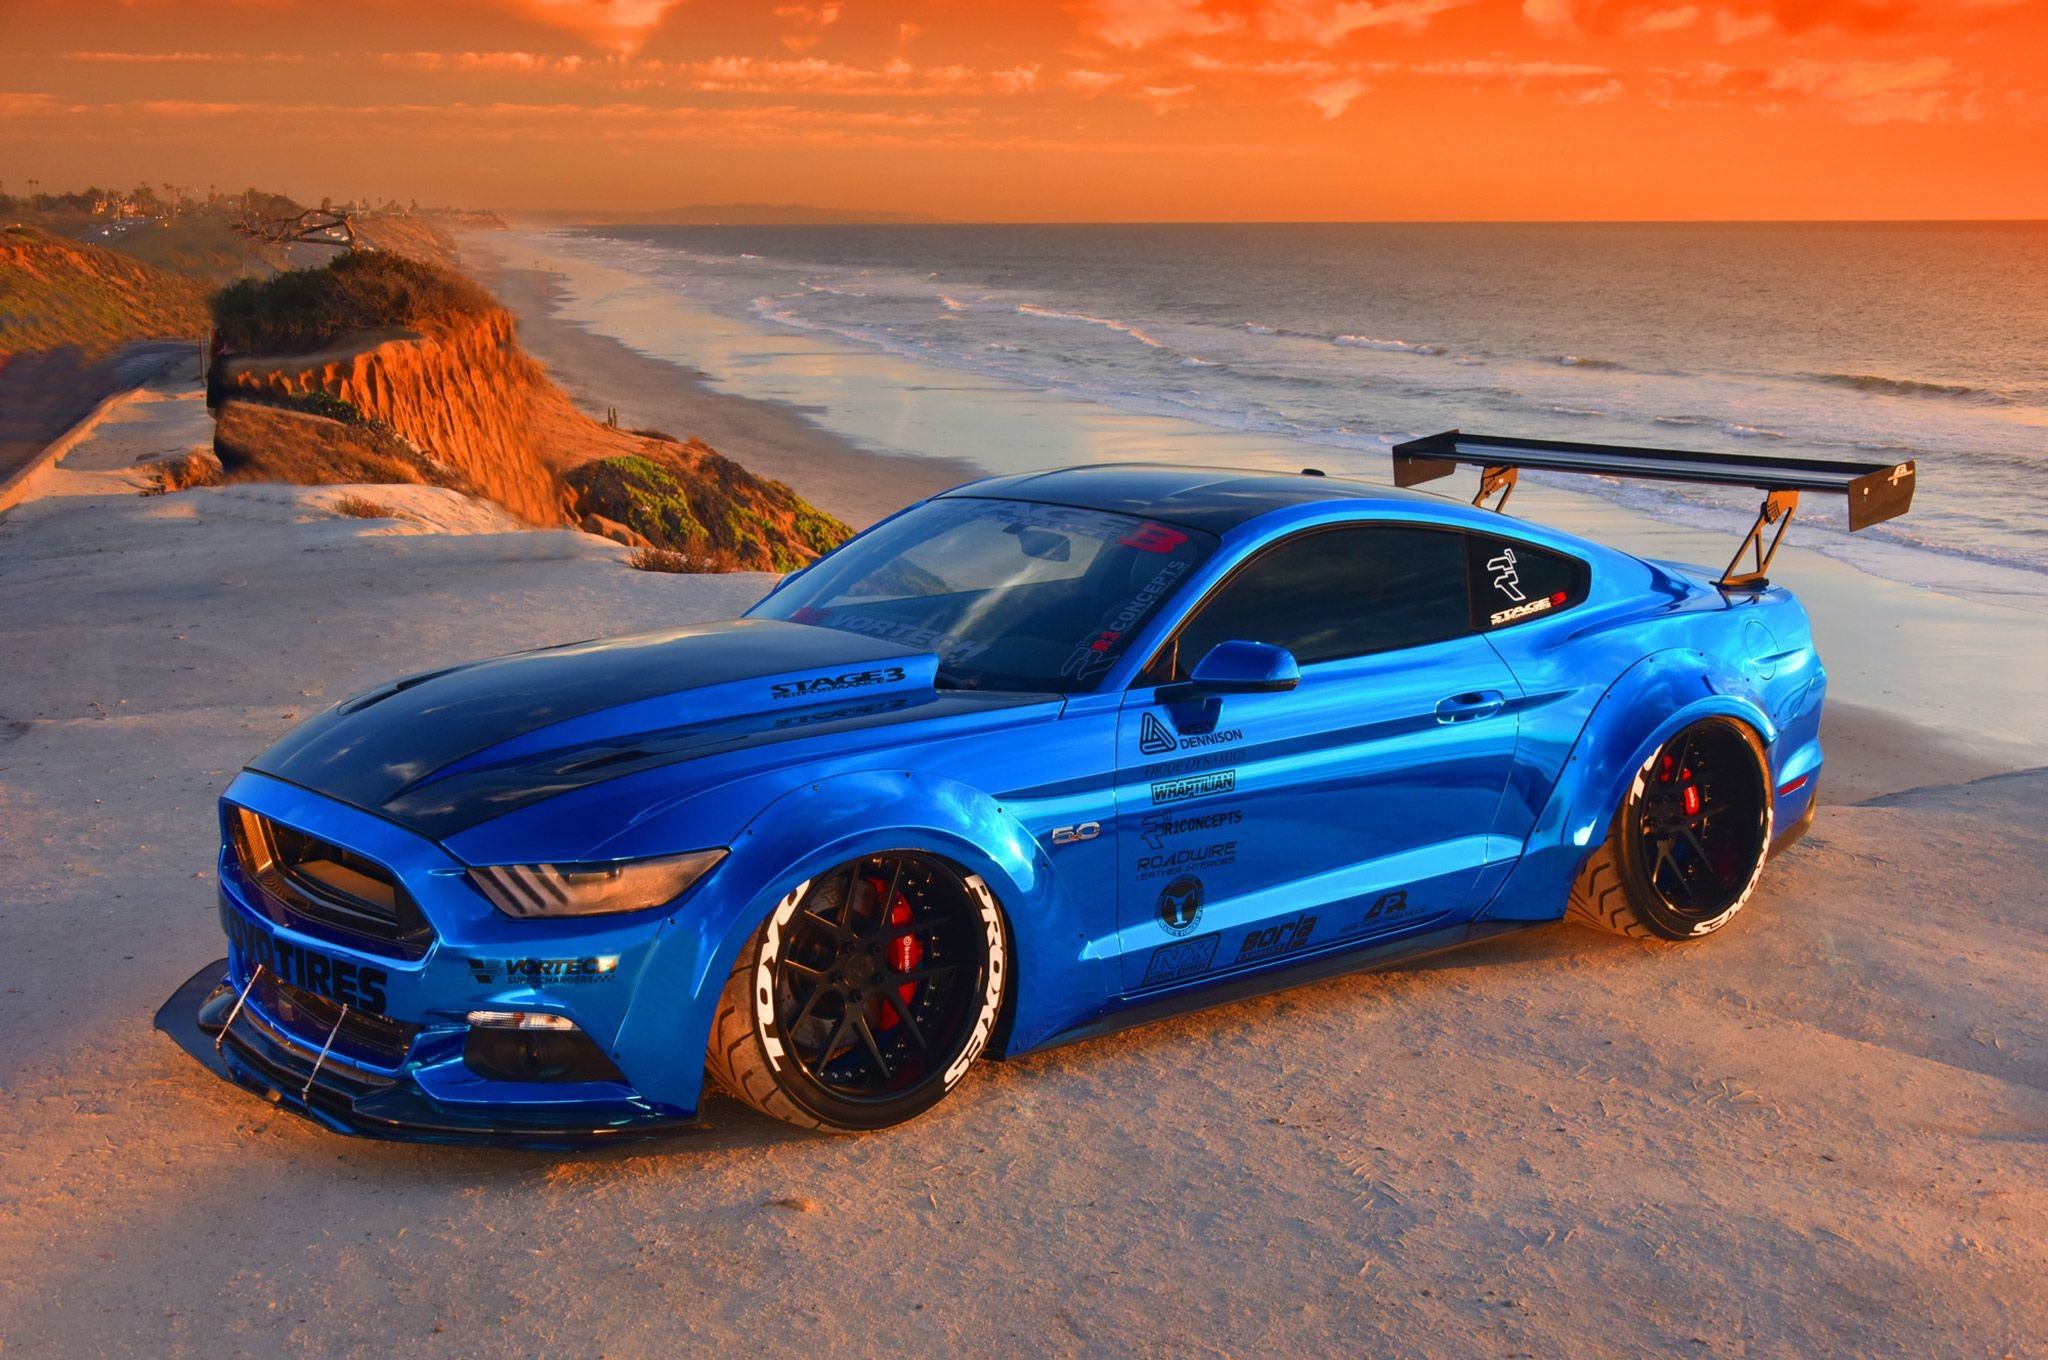 2015 S550 Ford Mustang Drift Race Racing Muscle Hot Rod